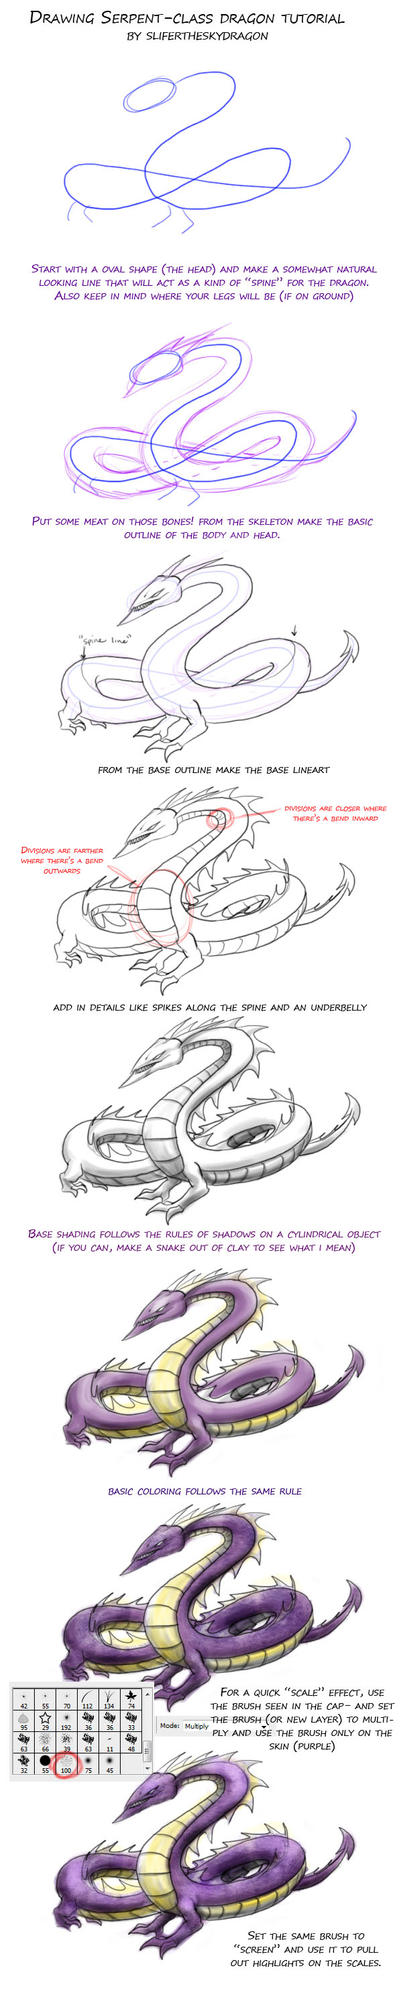 drawing snake type dragon TUT by slifertheskydragon